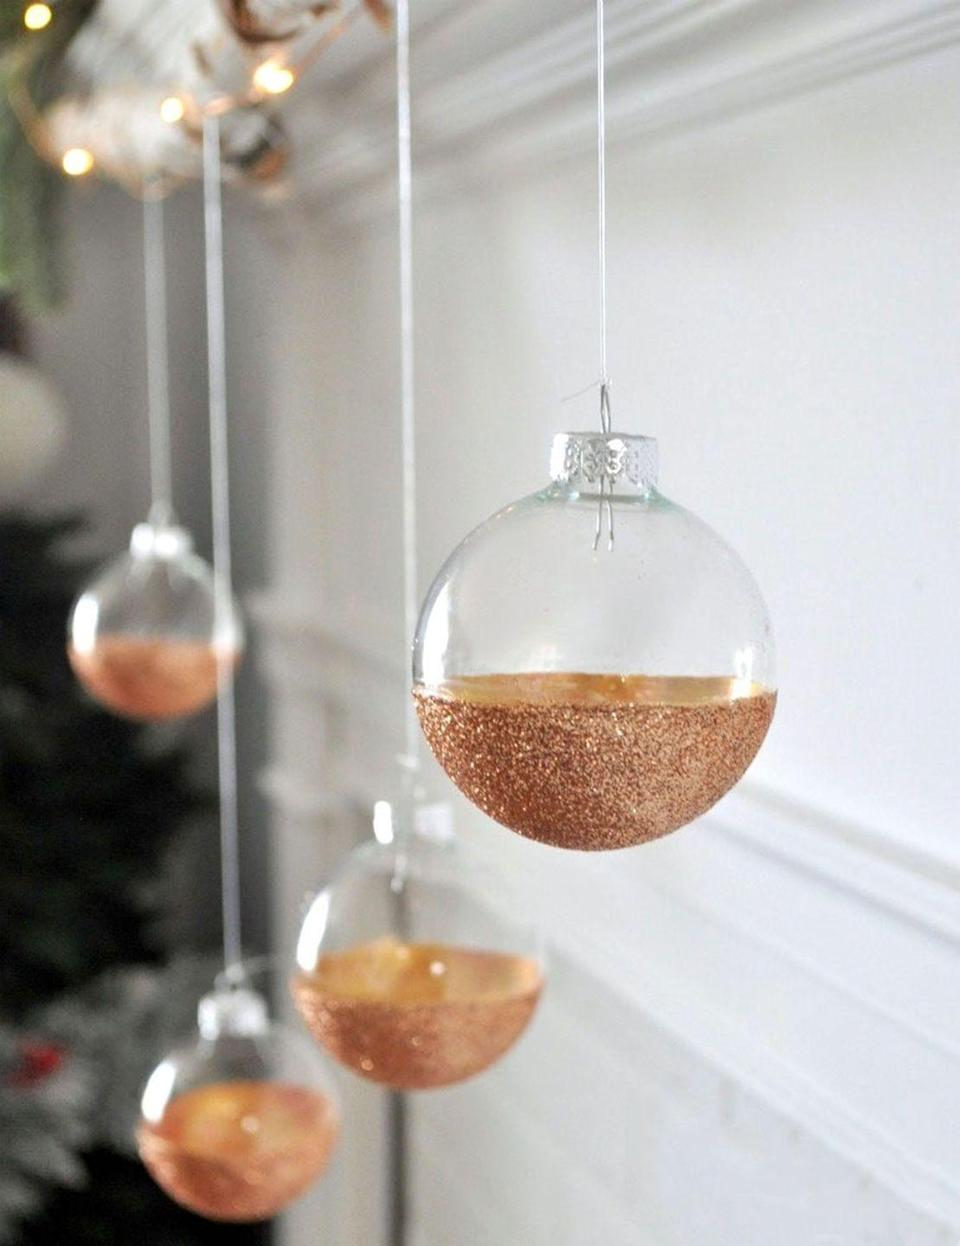 """<p>Copper paint and glitter lend an air of rustic elegance to these beautiful ornaments. </p><p><strong>Get the tutorial at <a href=""""https://jenniferrizzo.com/2016/11/modern-rustic-mantel-easy-diy-glitter-ornaments.html"""" rel=""""nofollow noopener"""" target=""""_blank"""" data-ylk=""""slk:Jennifer Rizzo"""" class=""""link rapid-noclick-resp"""">Jennifer Rizzo</a>.</strong></p><p><a class=""""link rapid-noclick-resp"""" href=""""https://www.amazon.com/Martha-Stewart-Crafts-Multi-Surface-Metallic/dp/B007C7X8QW?tag=syn-yahoo-20&ascsubtag=%5Bartid%7C10050.g.28831556%5Bsrc%7Cyahoo-us"""" rel=""""nofollow noopener"""" target=""""_blank"""" data-ylk=""""slk:SHOP COPPER CRAFT PAINT"""">SHOP COPPER CRAFT PAINT</a></p>"""